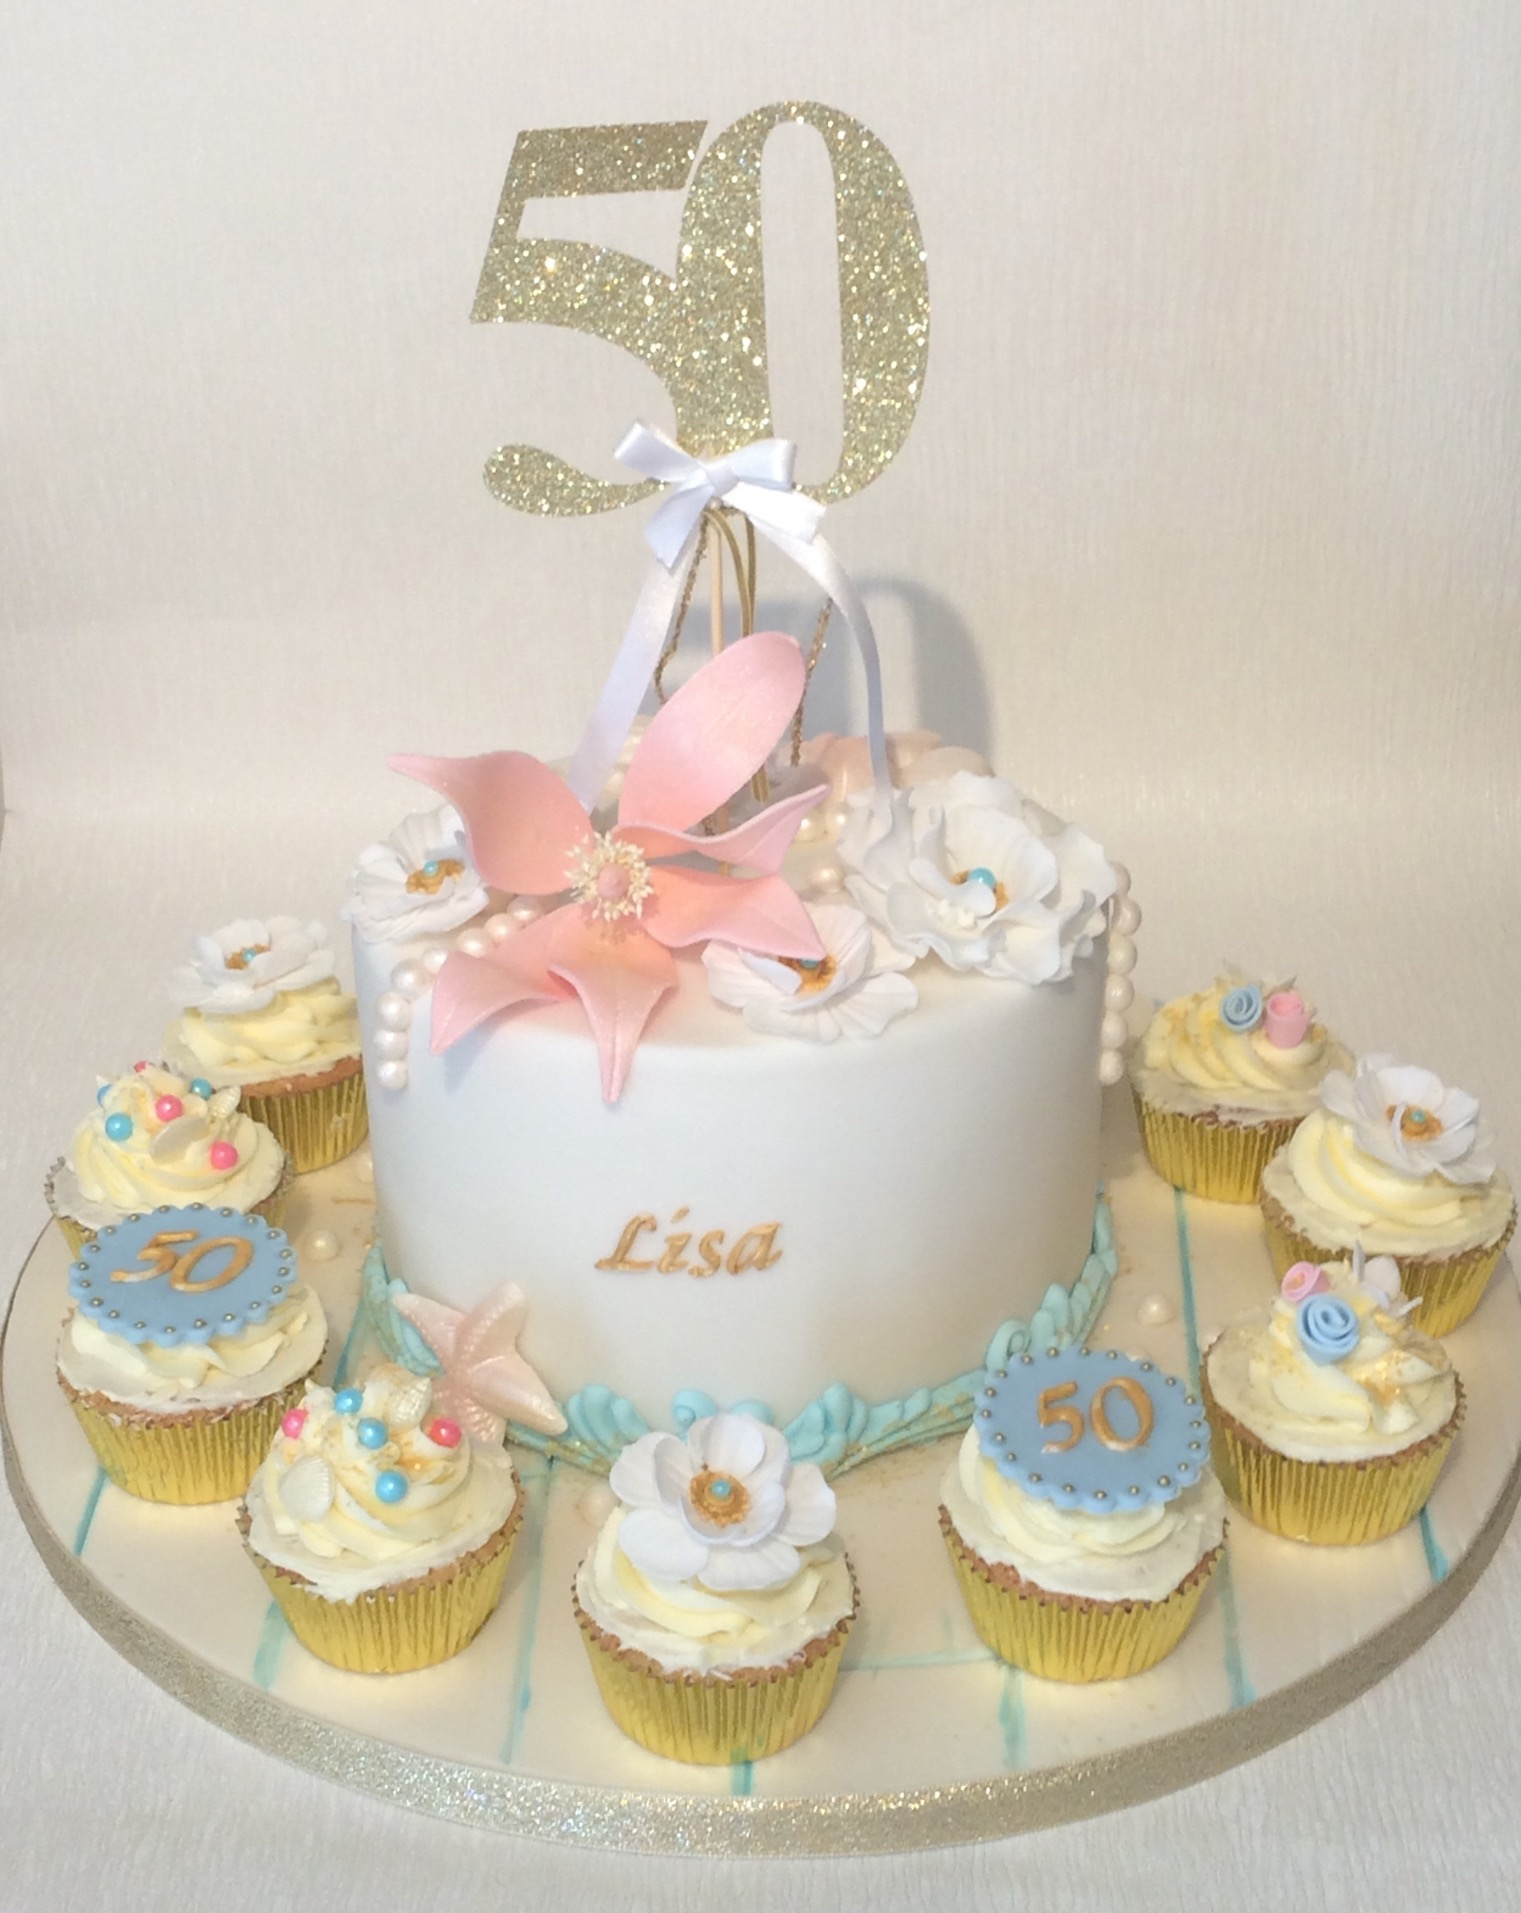 Elegant Birthday Cakes For Ladies